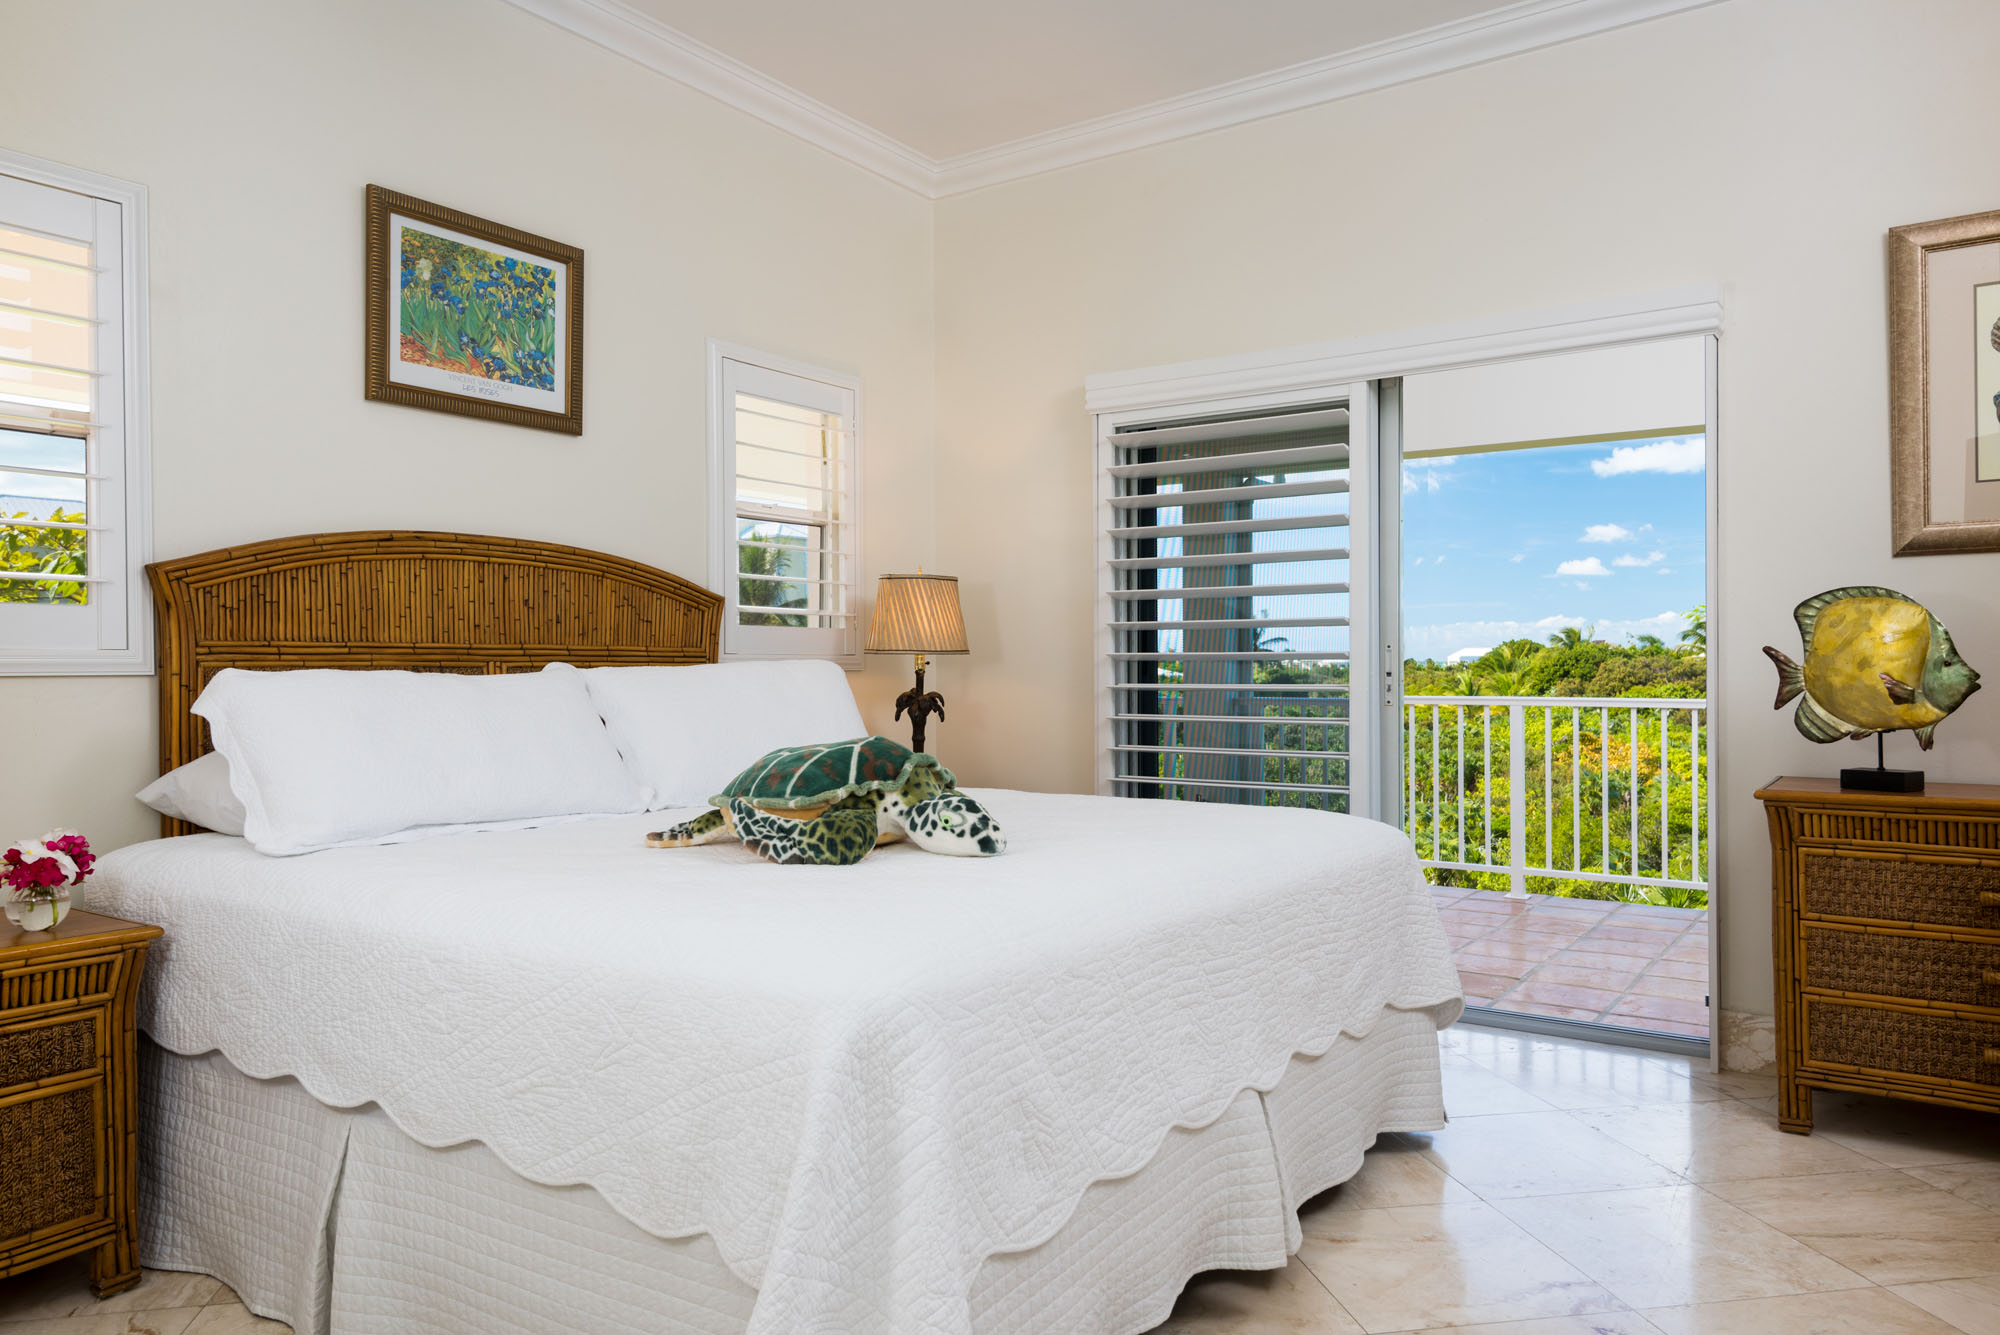 An upper level bedroom with queen-size bed at Reef Pearl, Grace Bay Beach, Providenciales (Provo), Turks and Caicos Islands.